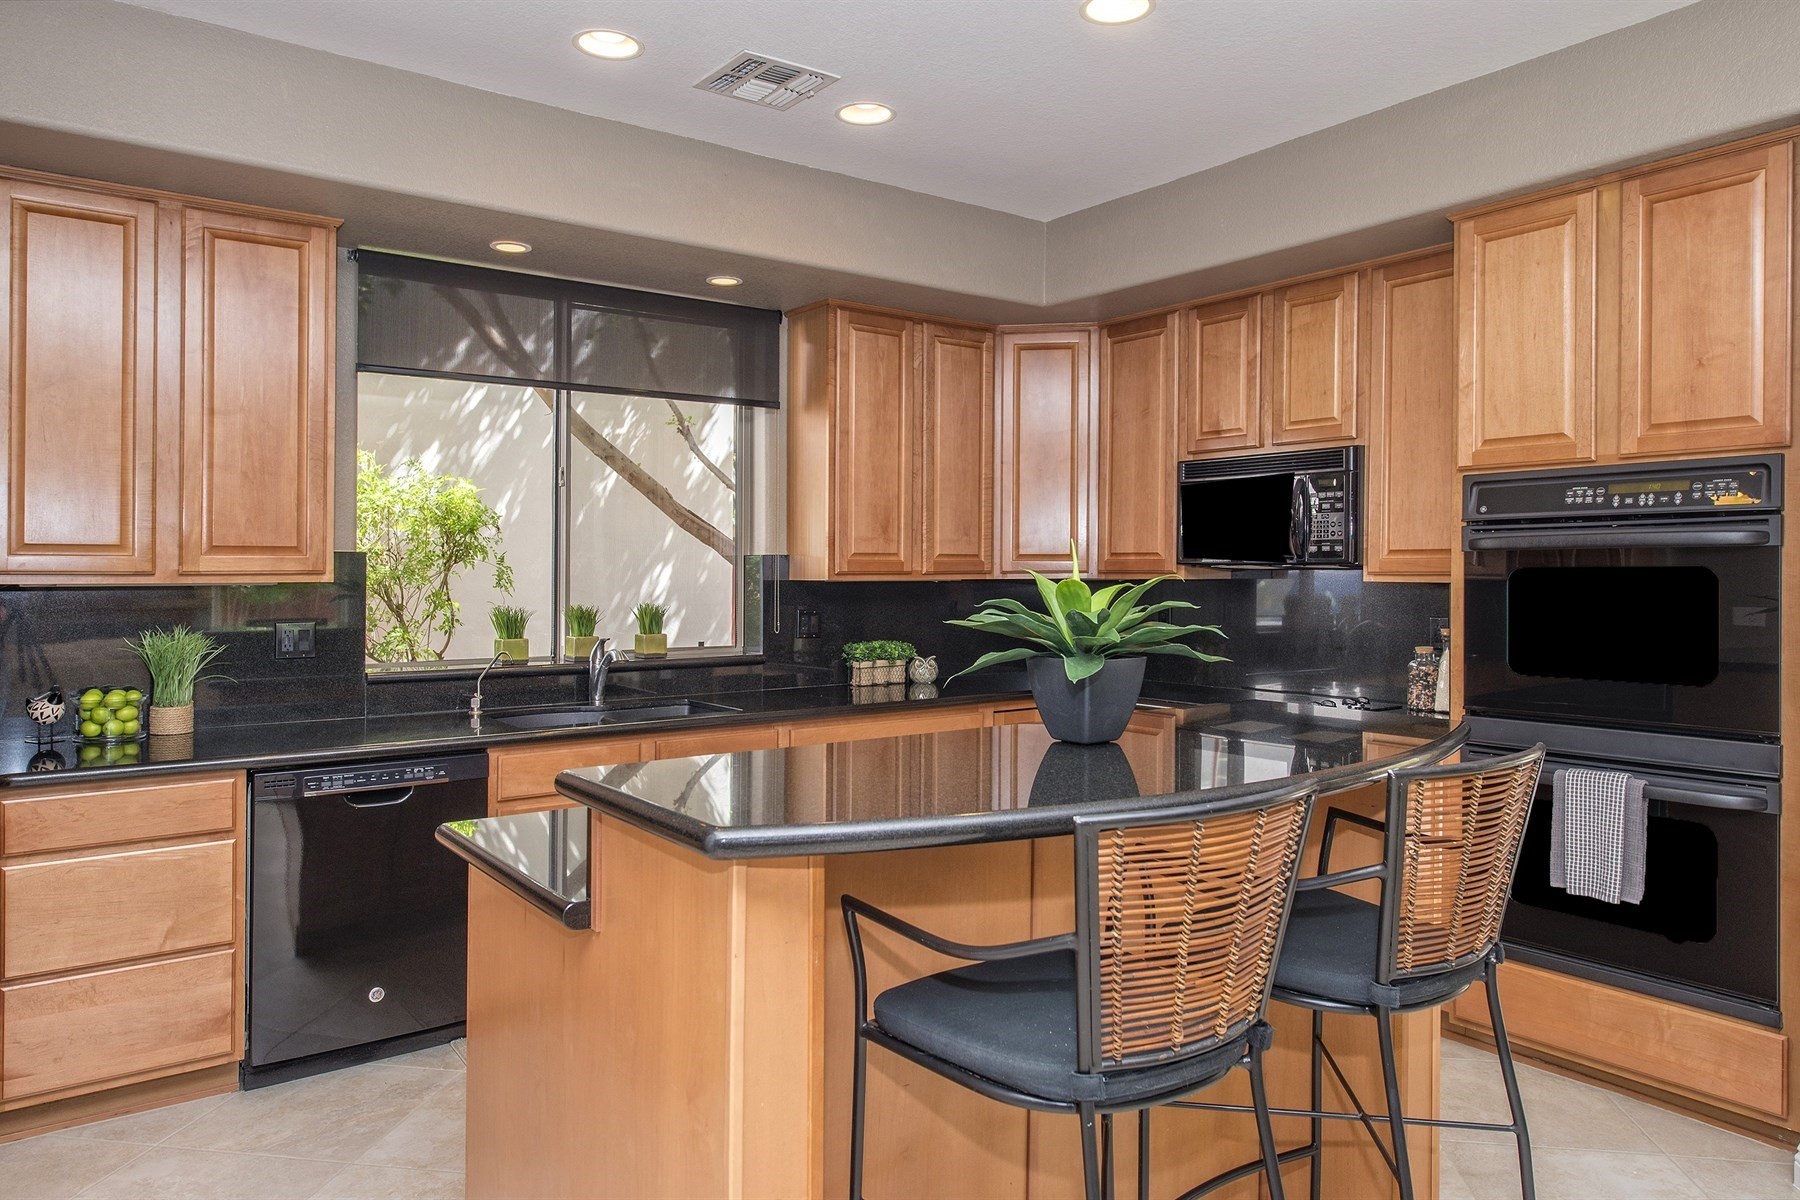 Townhouse for Sale at Beautiful modern townhouse nestled in the heart of Old Town Scottsdale 4322 N 78th St 3 Scottsdale, Arizona, 85251 United States